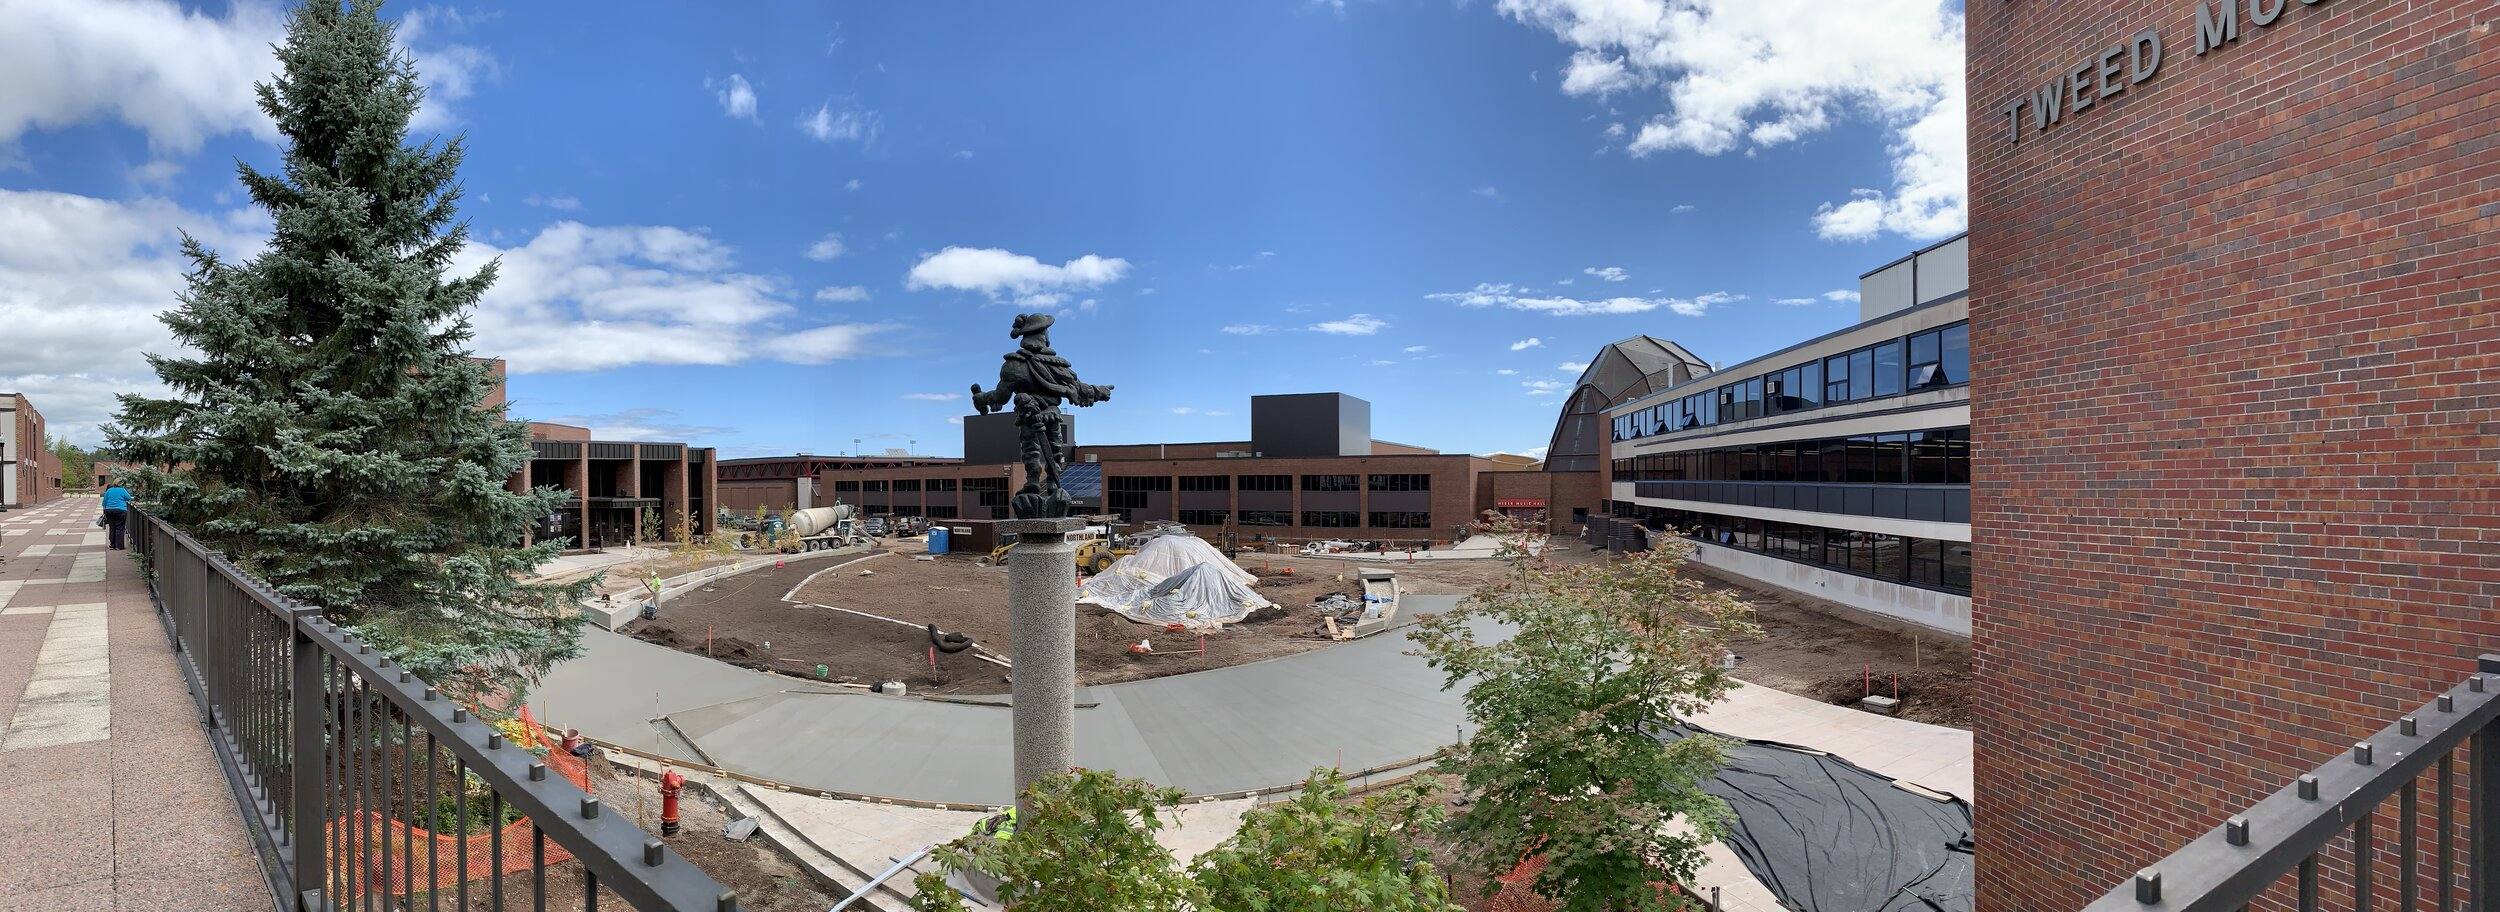 Ordean Court undergoing construction. Photo by Zack Benz